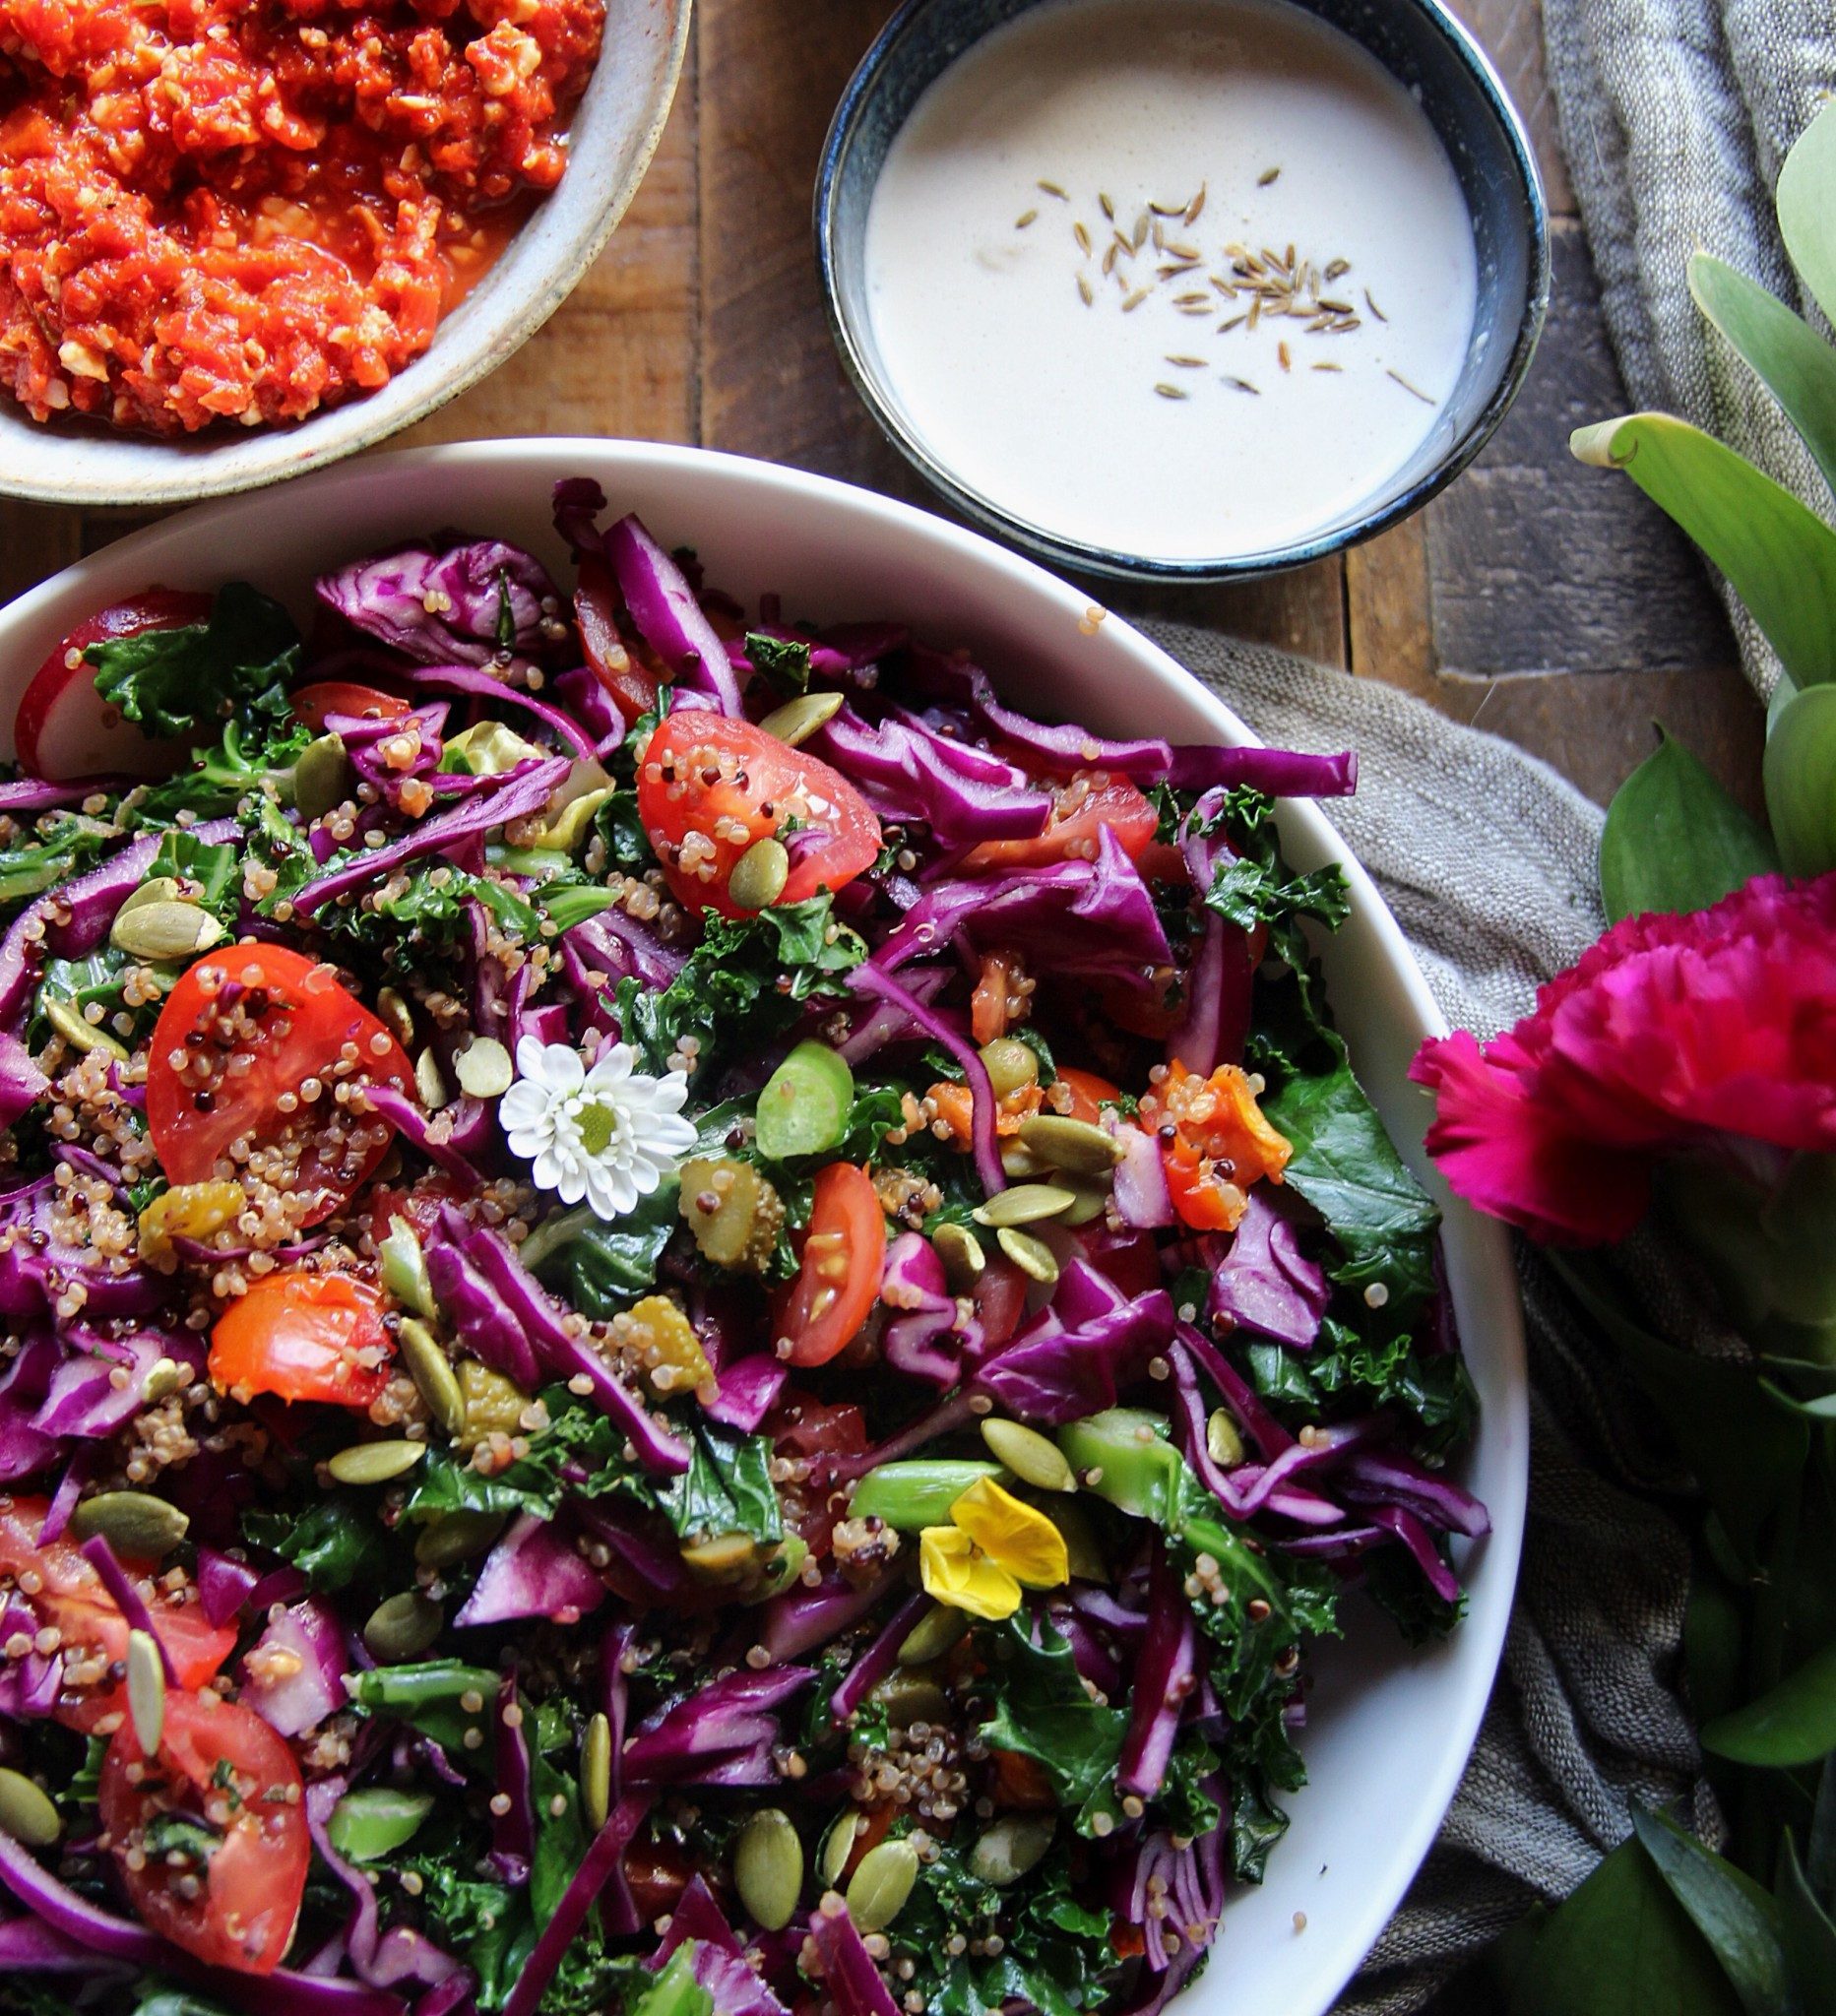 Healthy Red Cabbage Recipes  Super Healthy Kale and Red Cabbage Salad Rebel Recipes